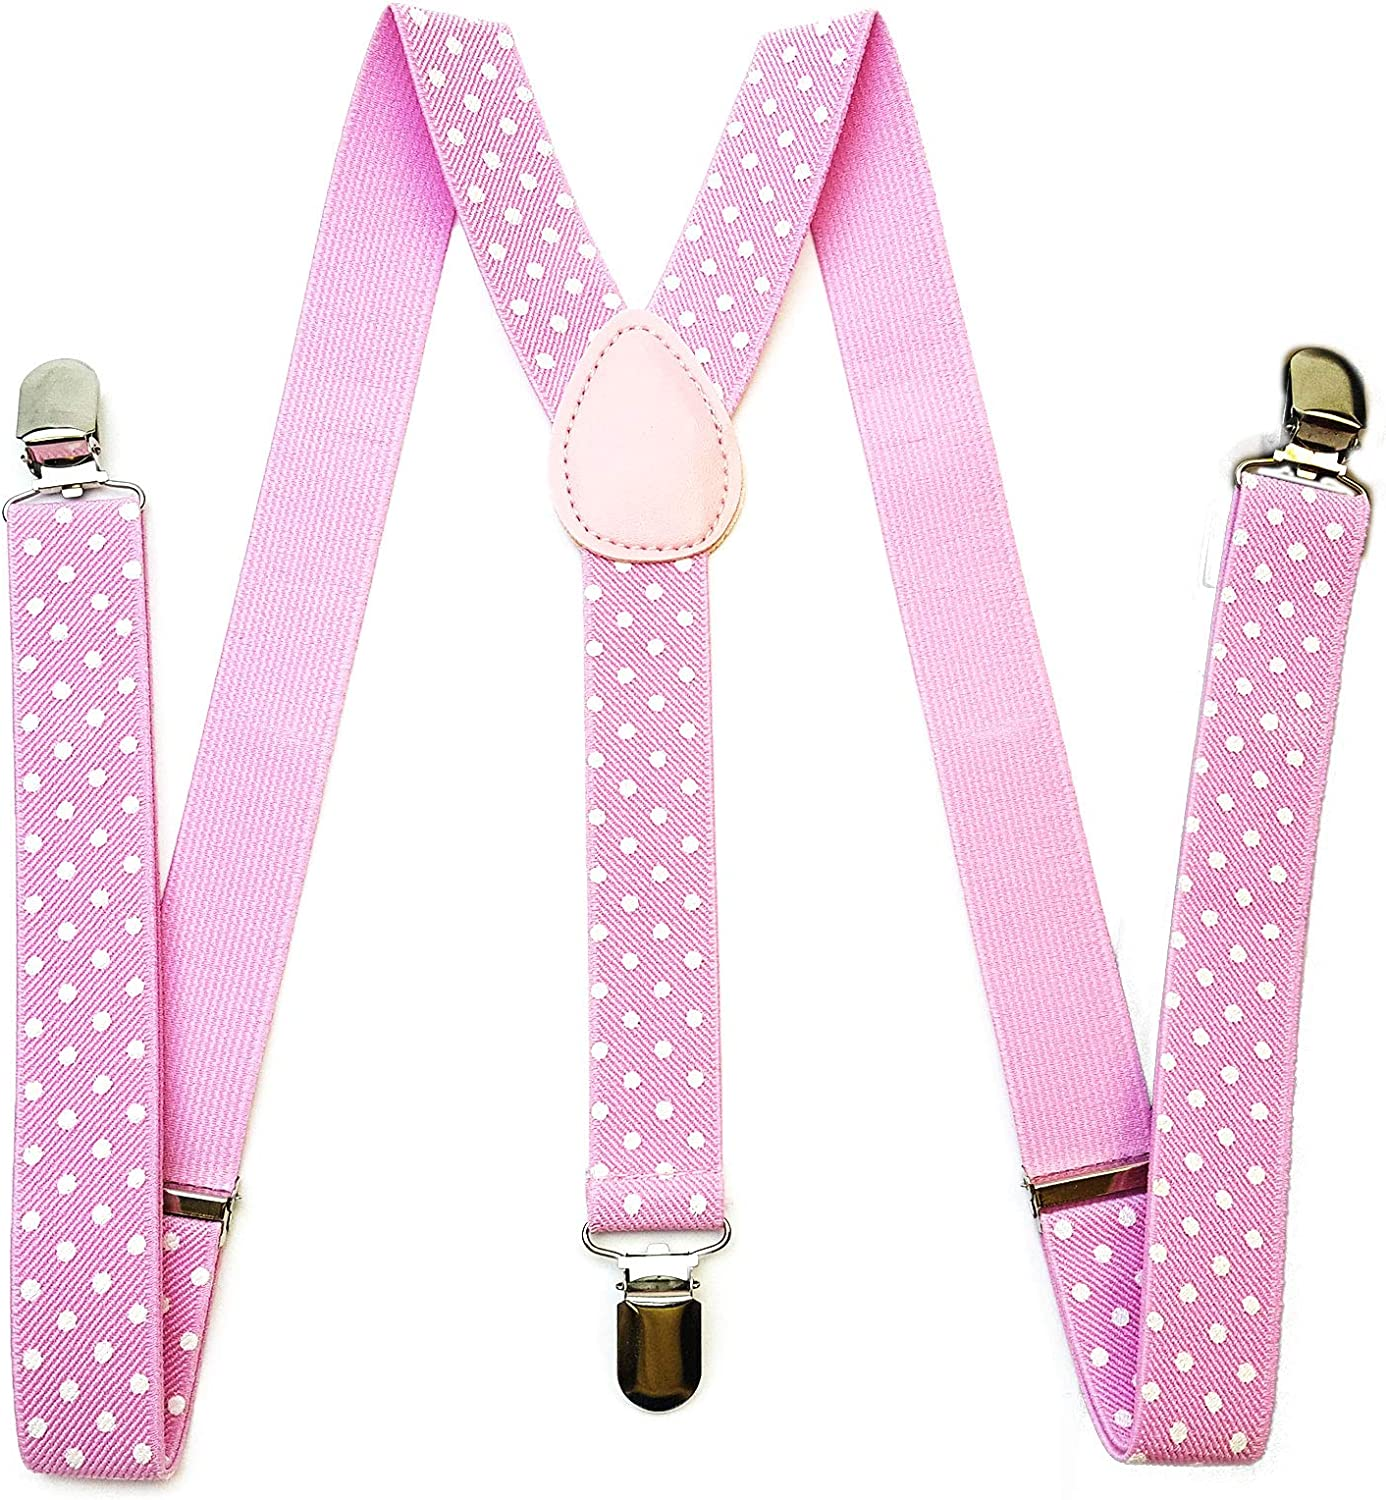 PrismMall Colorful Solid Color and Dot Pattern Suspender